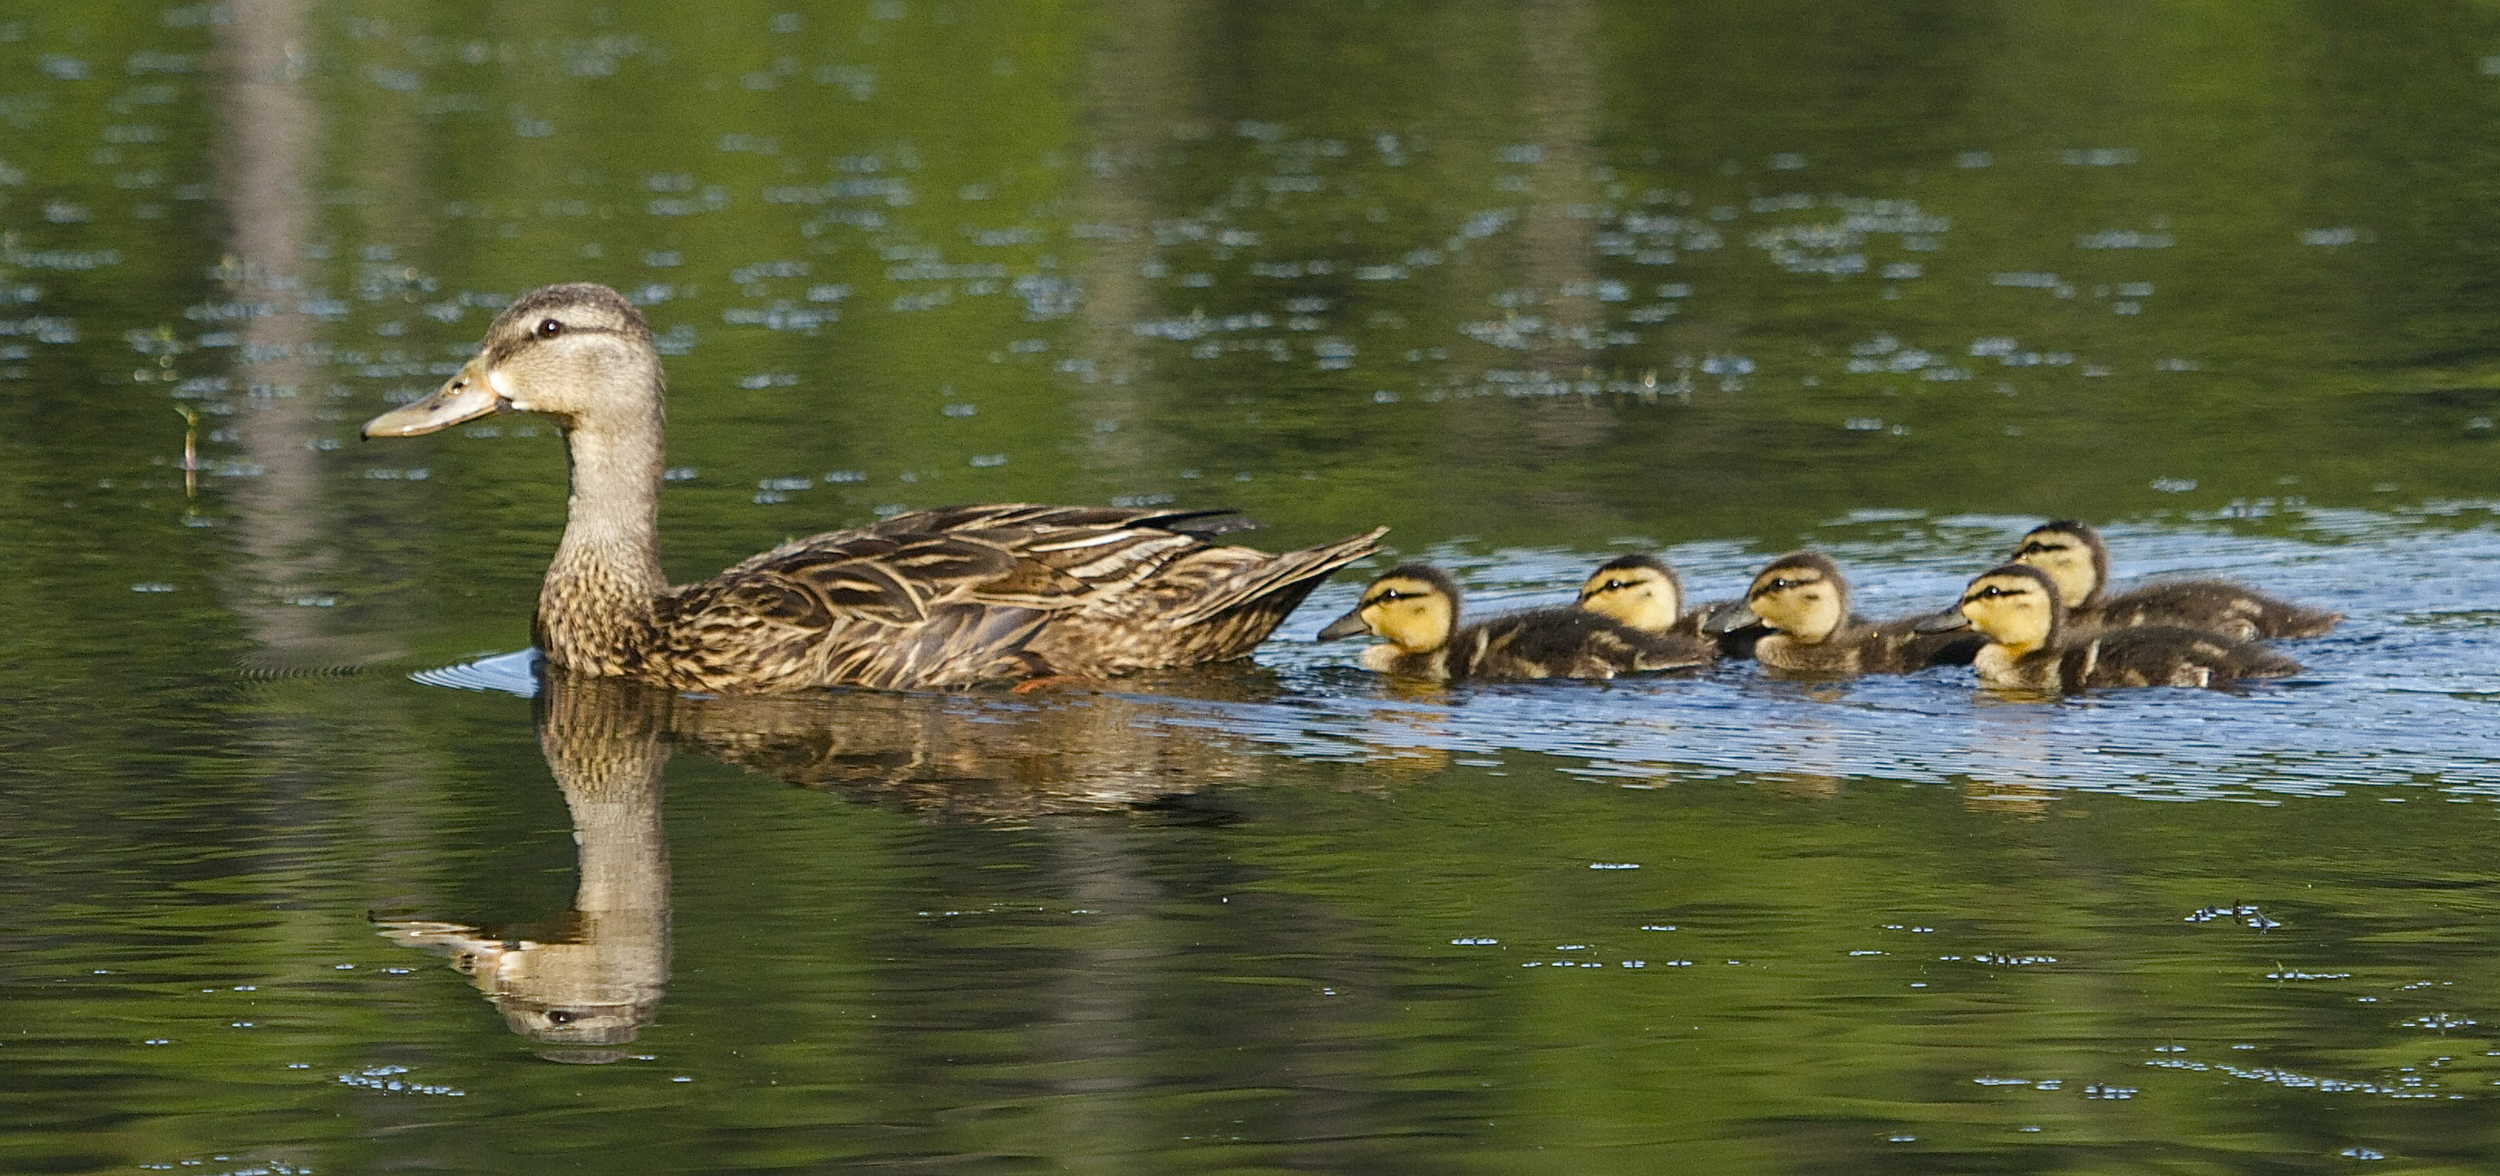 Got your ducks in a row for the summer heat wave?